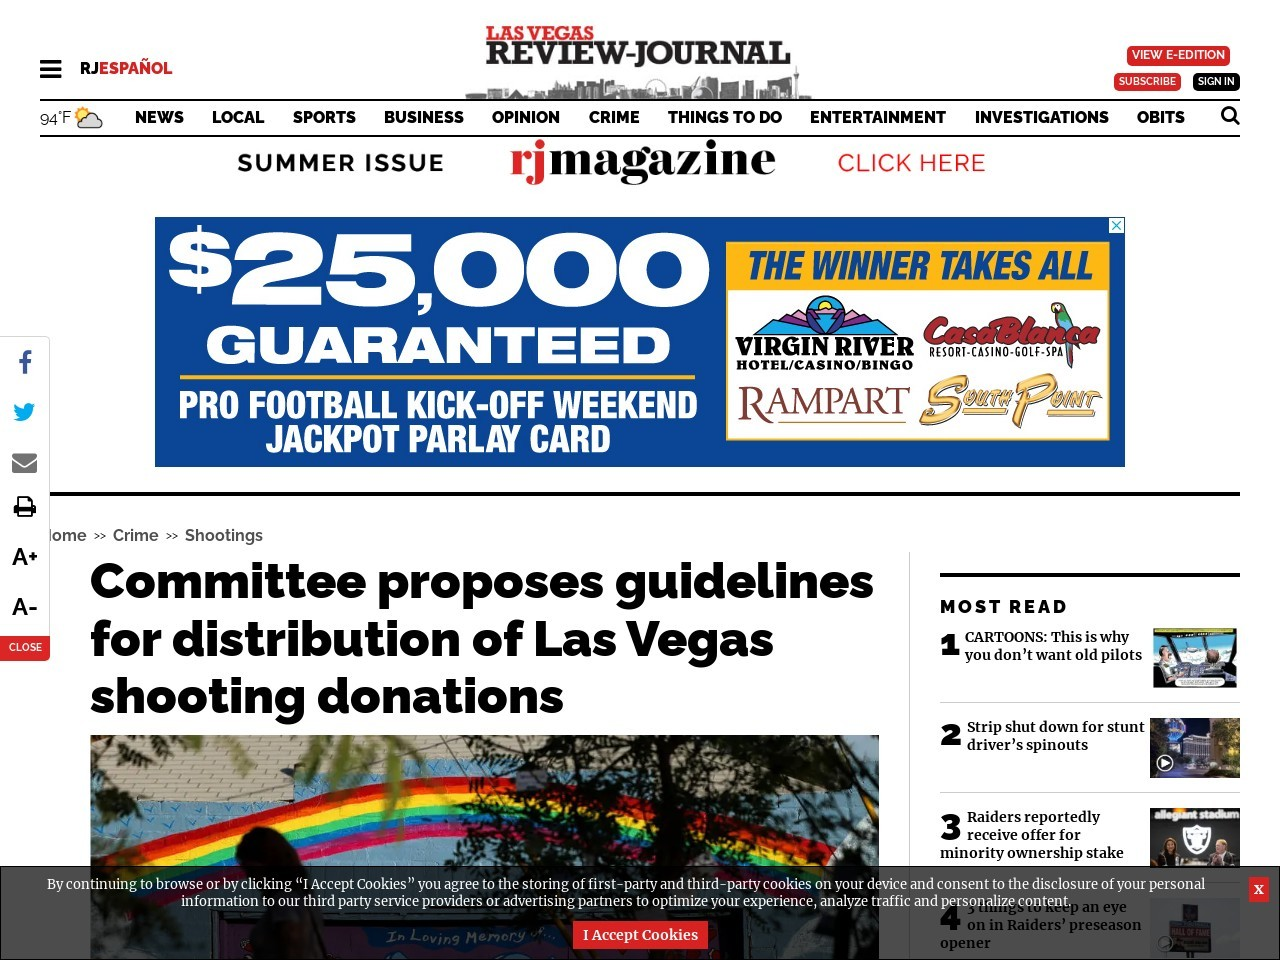 Committee proposes guidelines for distribution of Las Vegas shooting donations